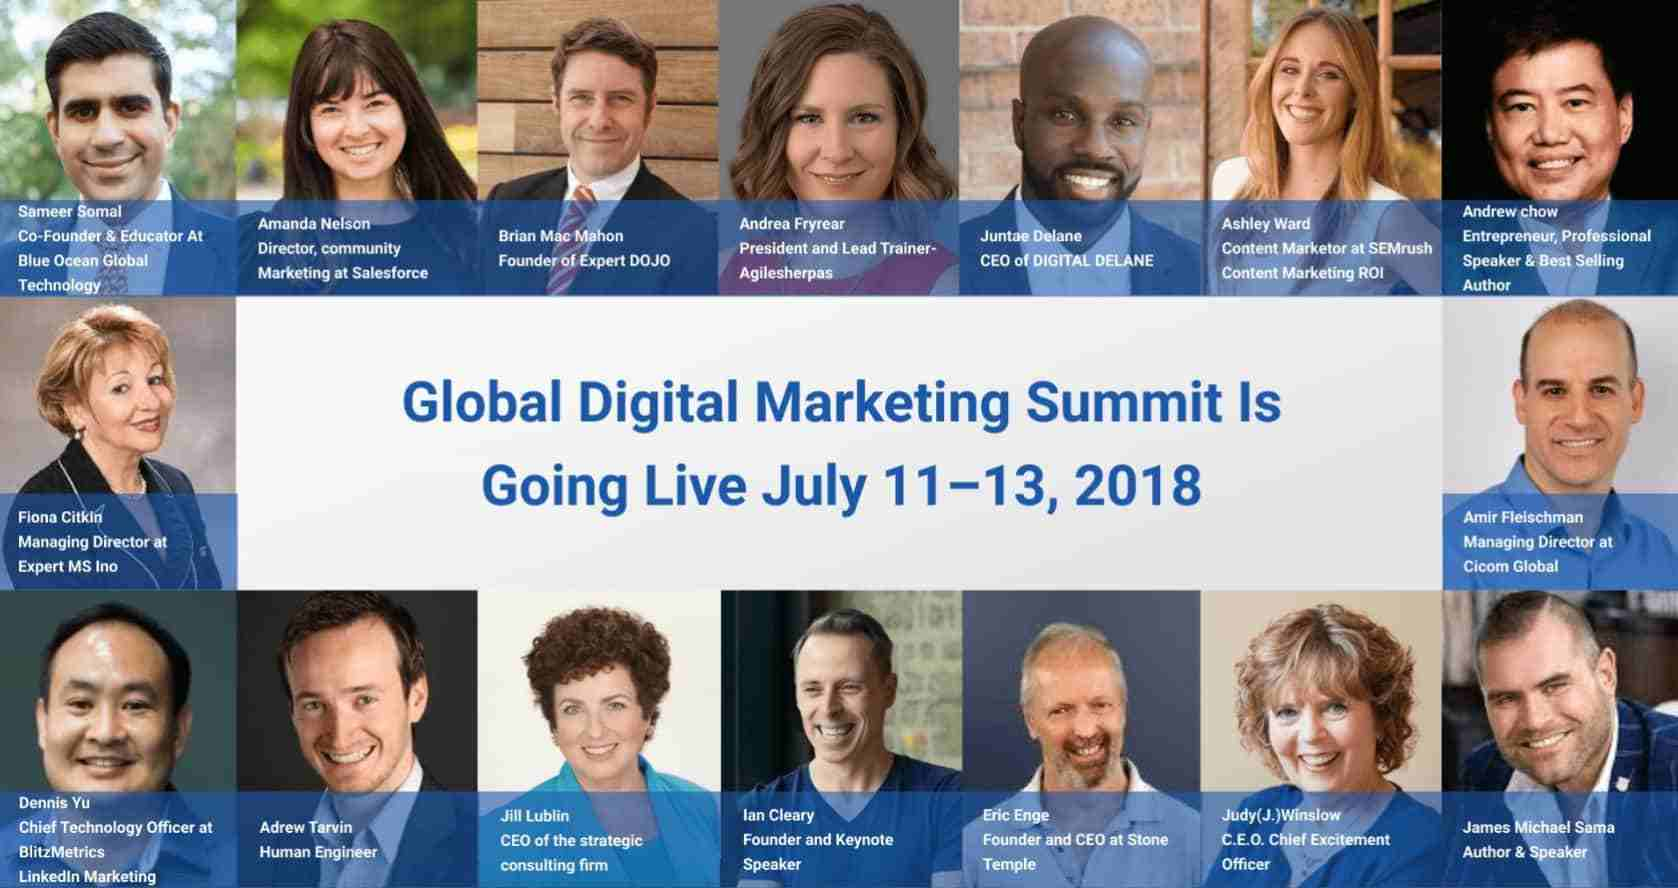 Global Digital Marketing Summit Is Going Live July 11–13, 2018